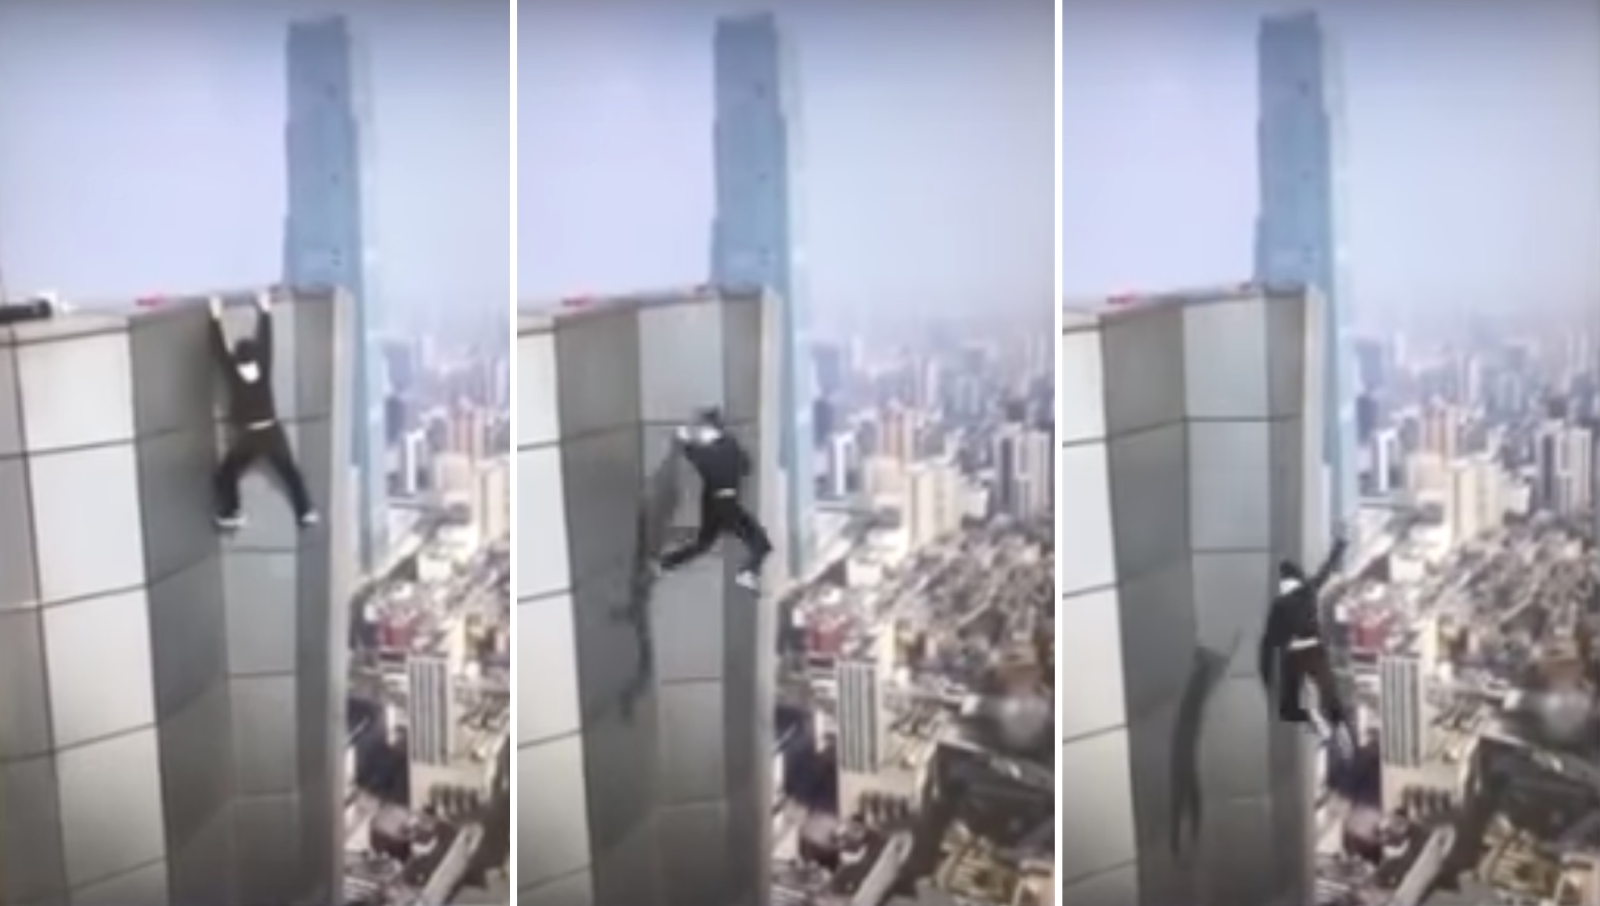 Daredevil falls to his death in China while trying to take an 'extreme selfie'